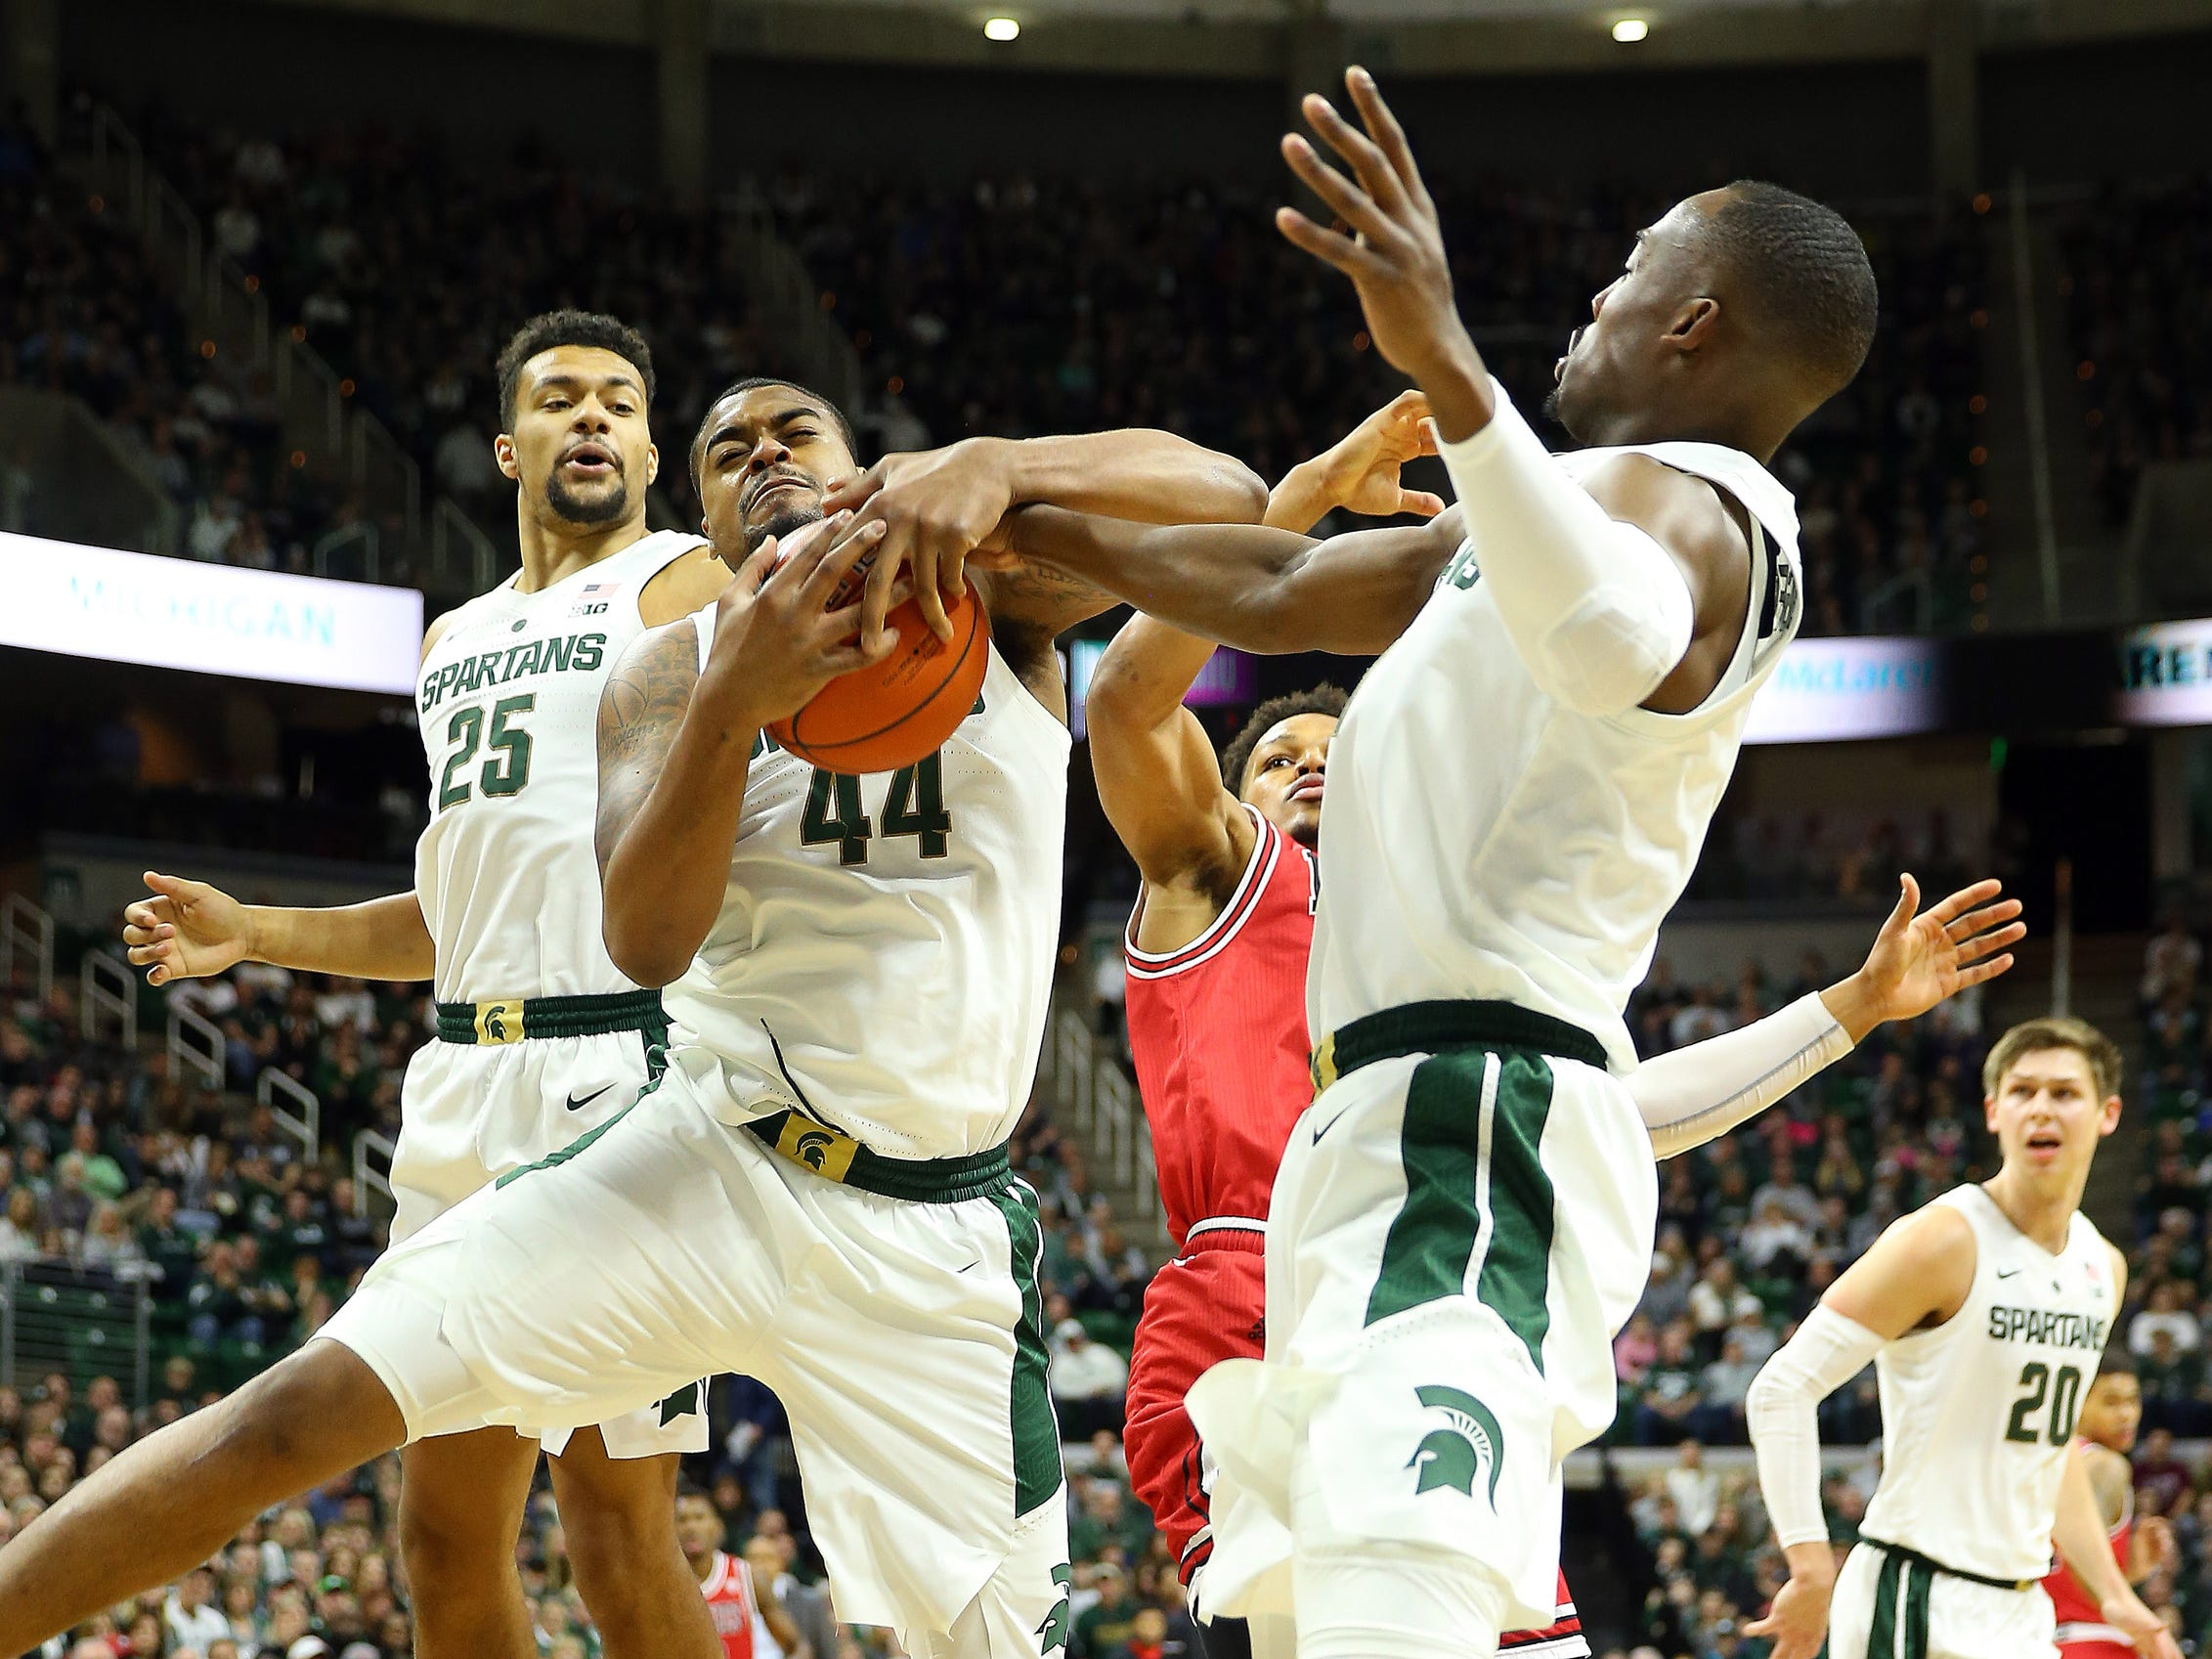 Michigan State forward Nick Ward, center, and guard Joshua Langford fight for a loose ball during the first half on Saturday, Dec. 29, 2018, in East Lansing.